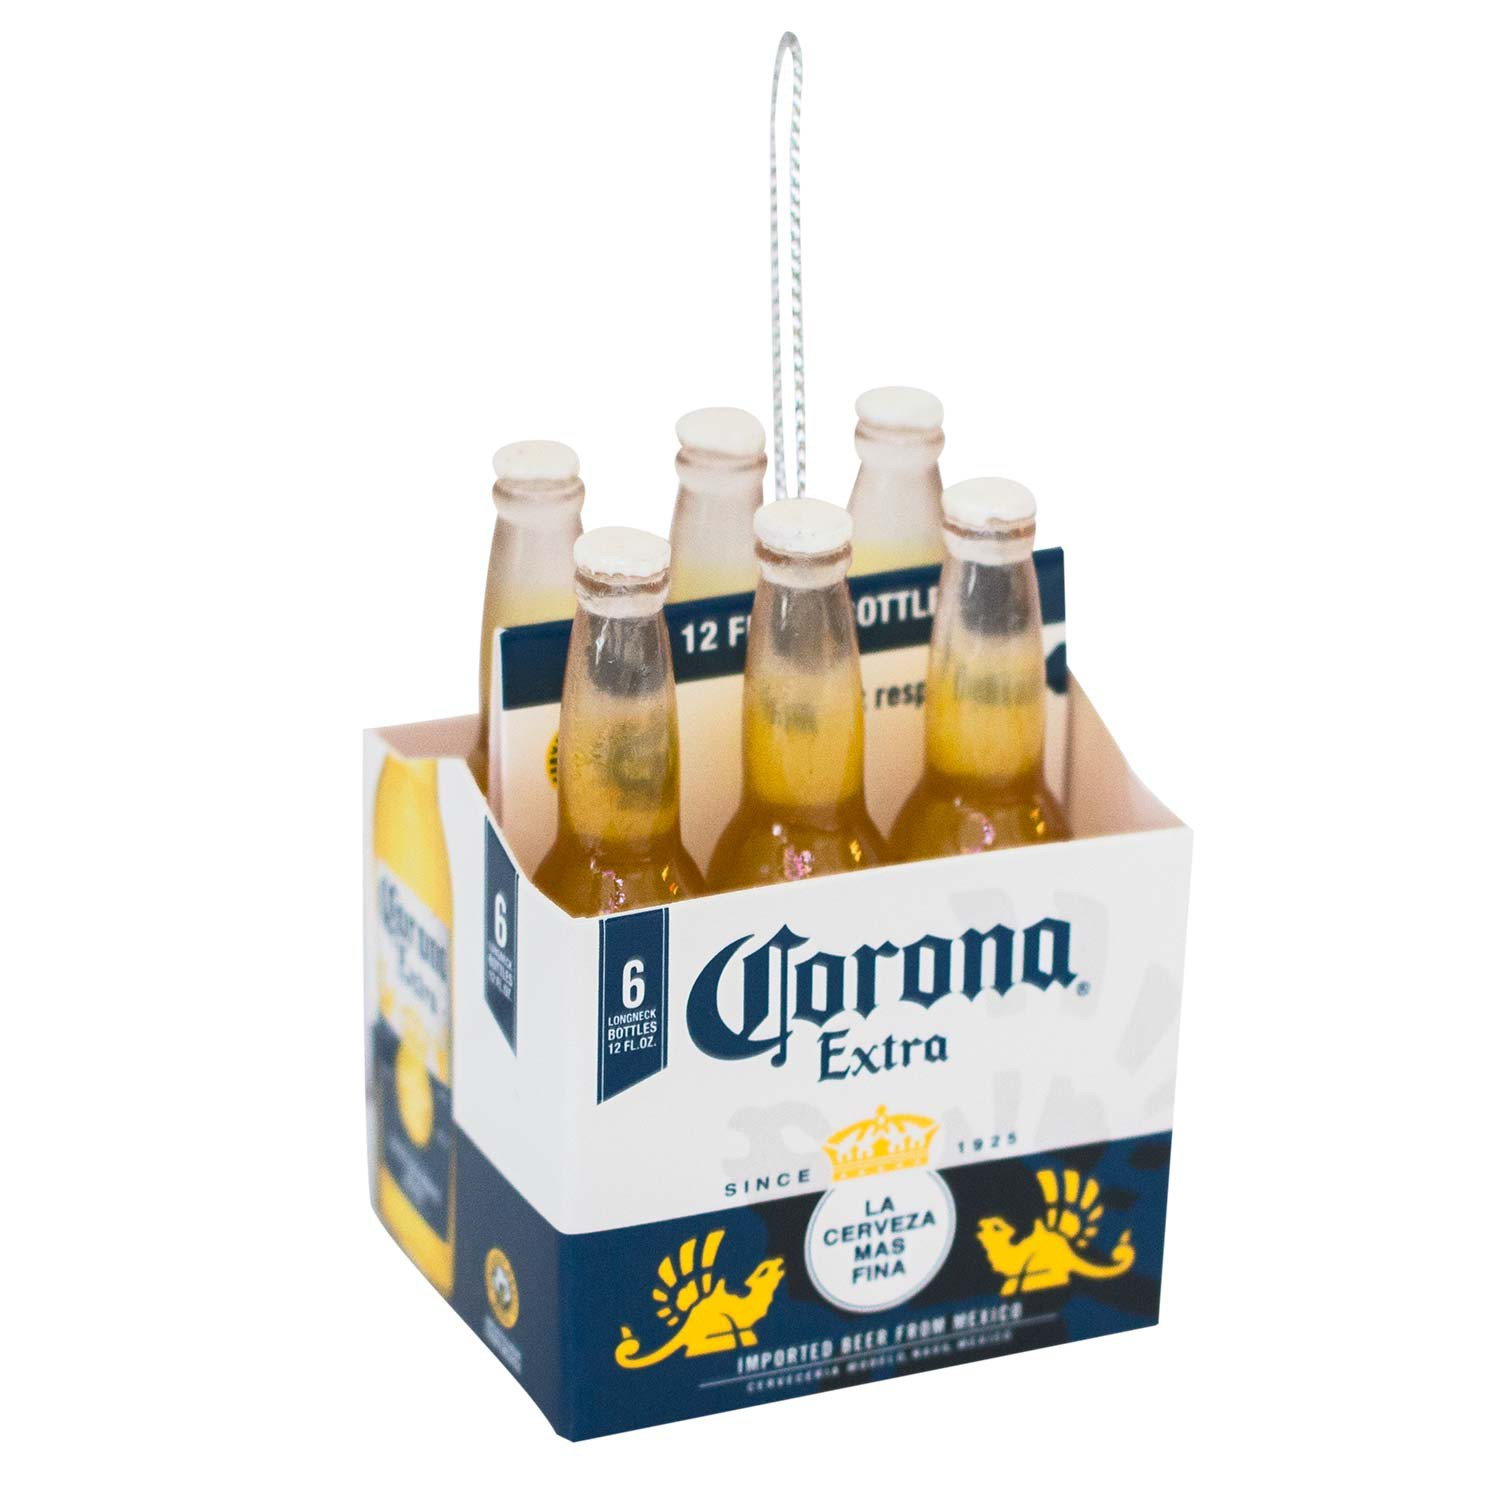 Corona Extra Six Pack Ornament